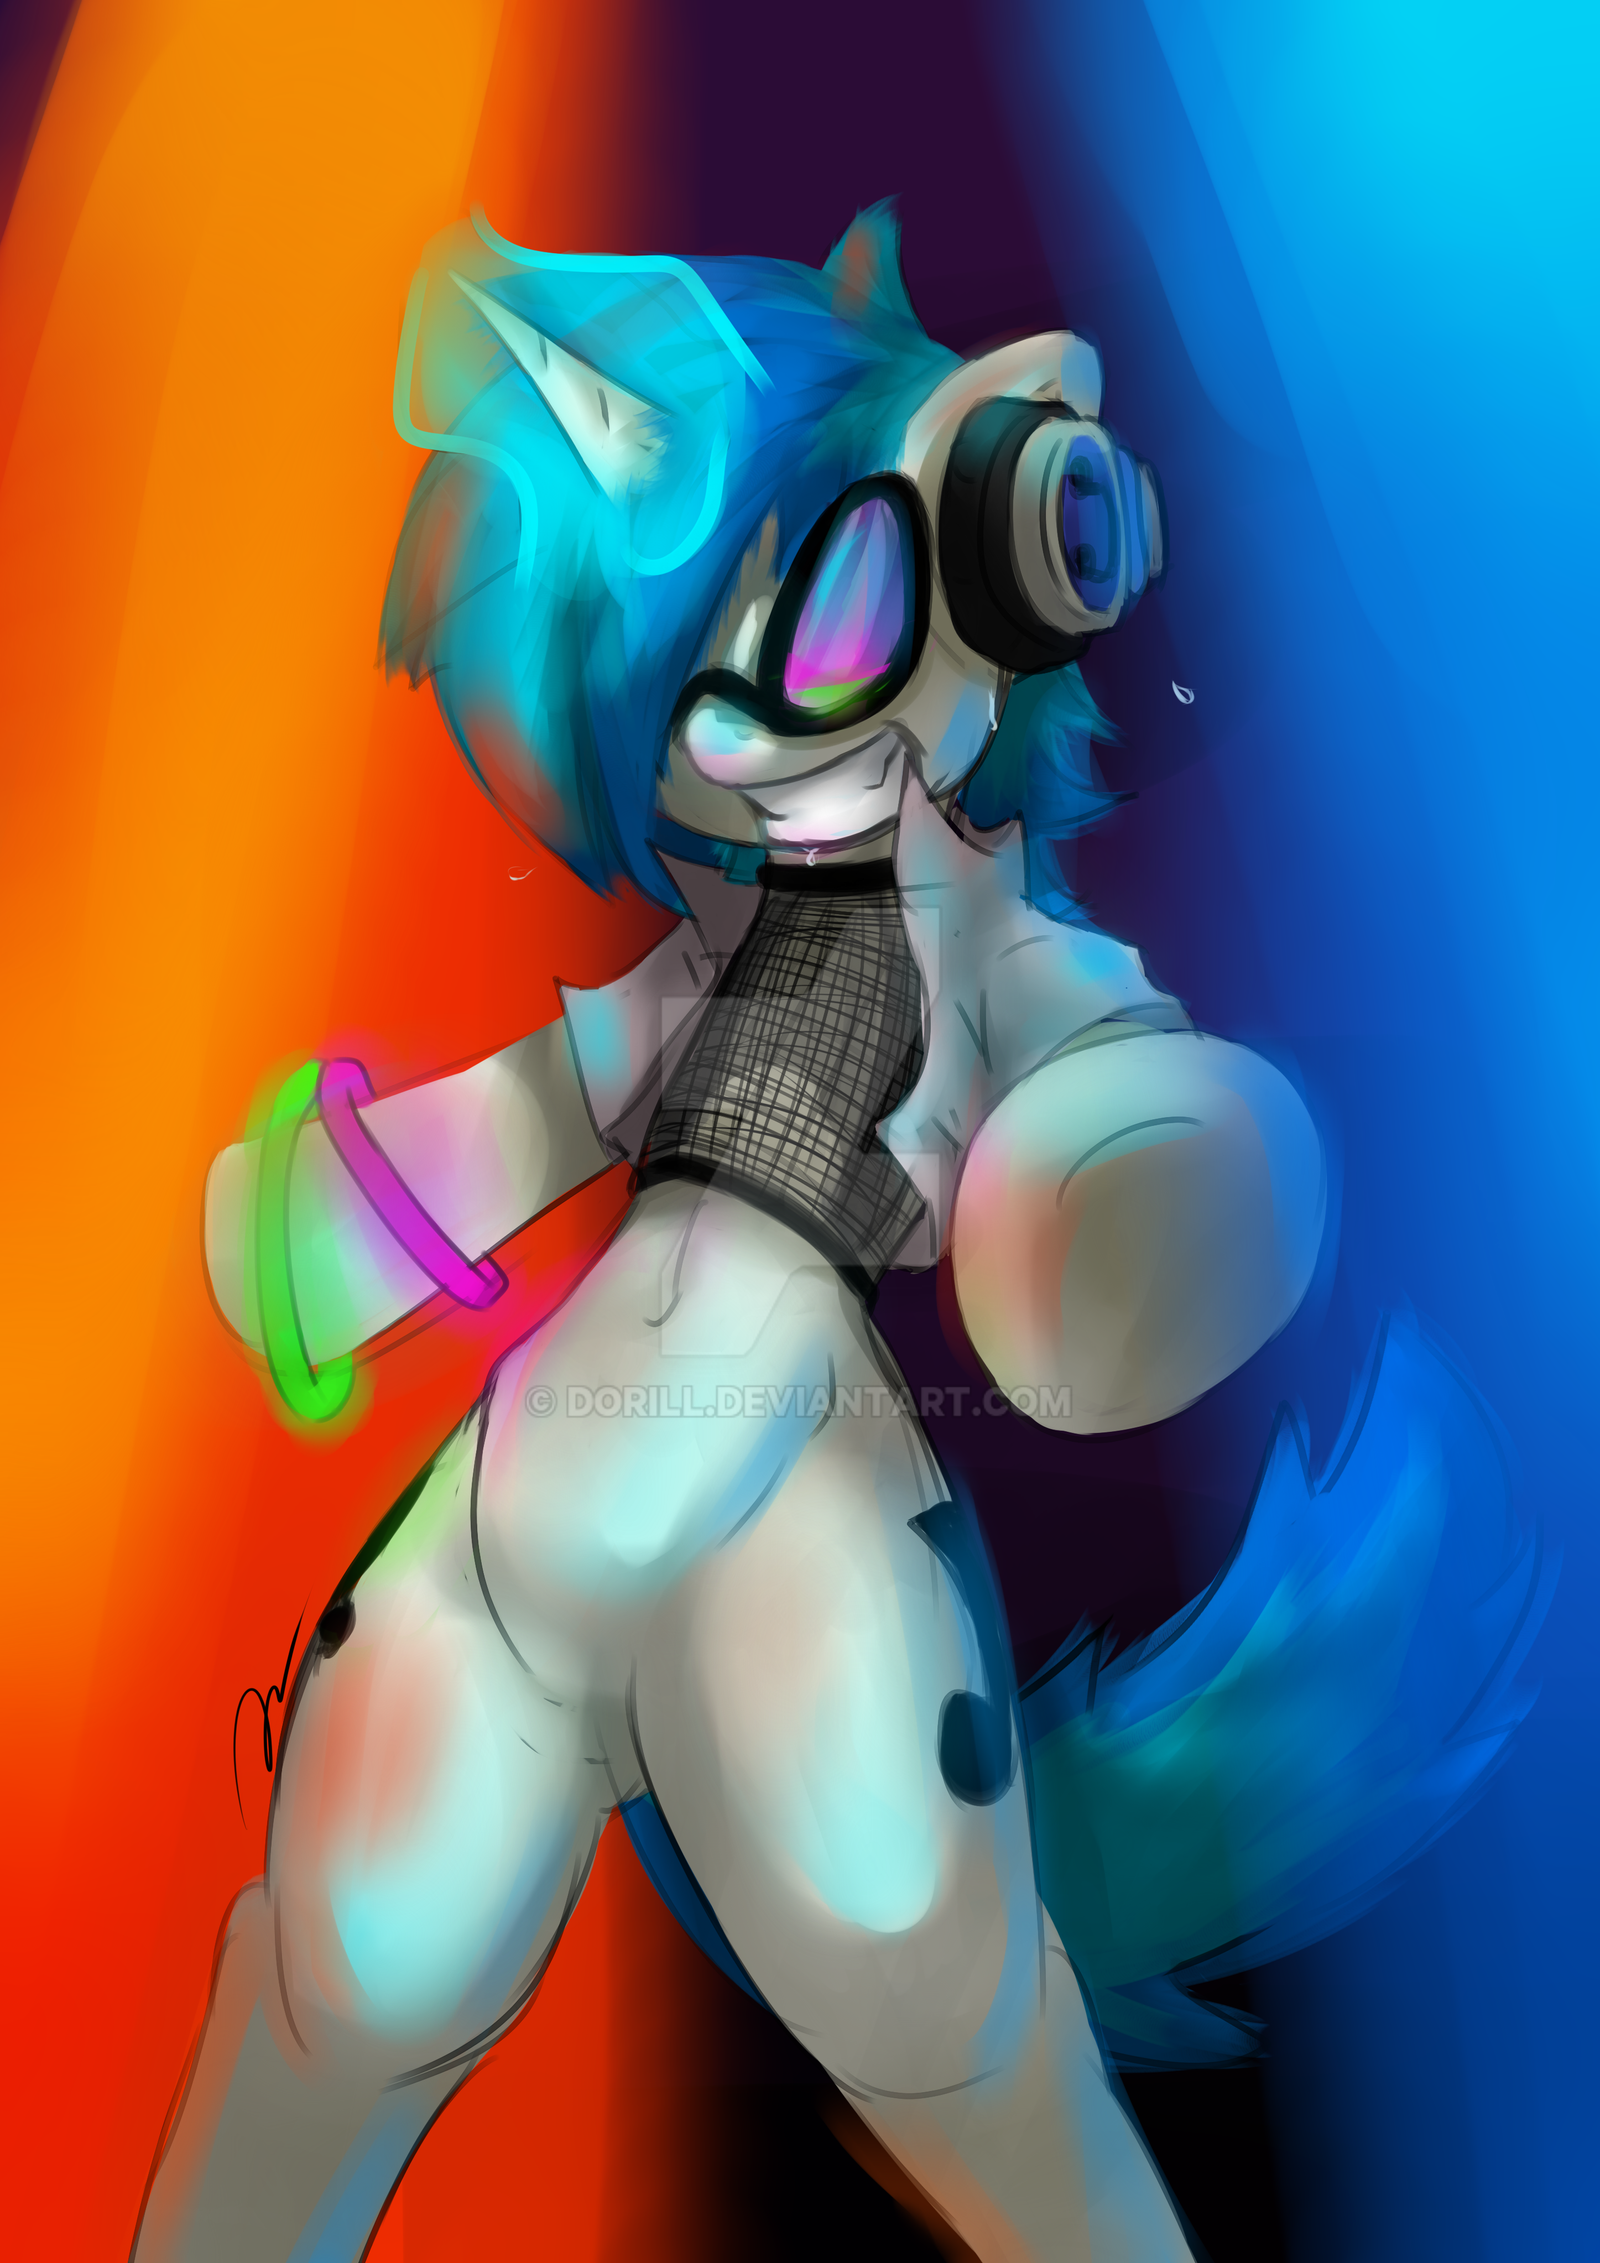 Vinyl Scratch - Pony Party by Dorill